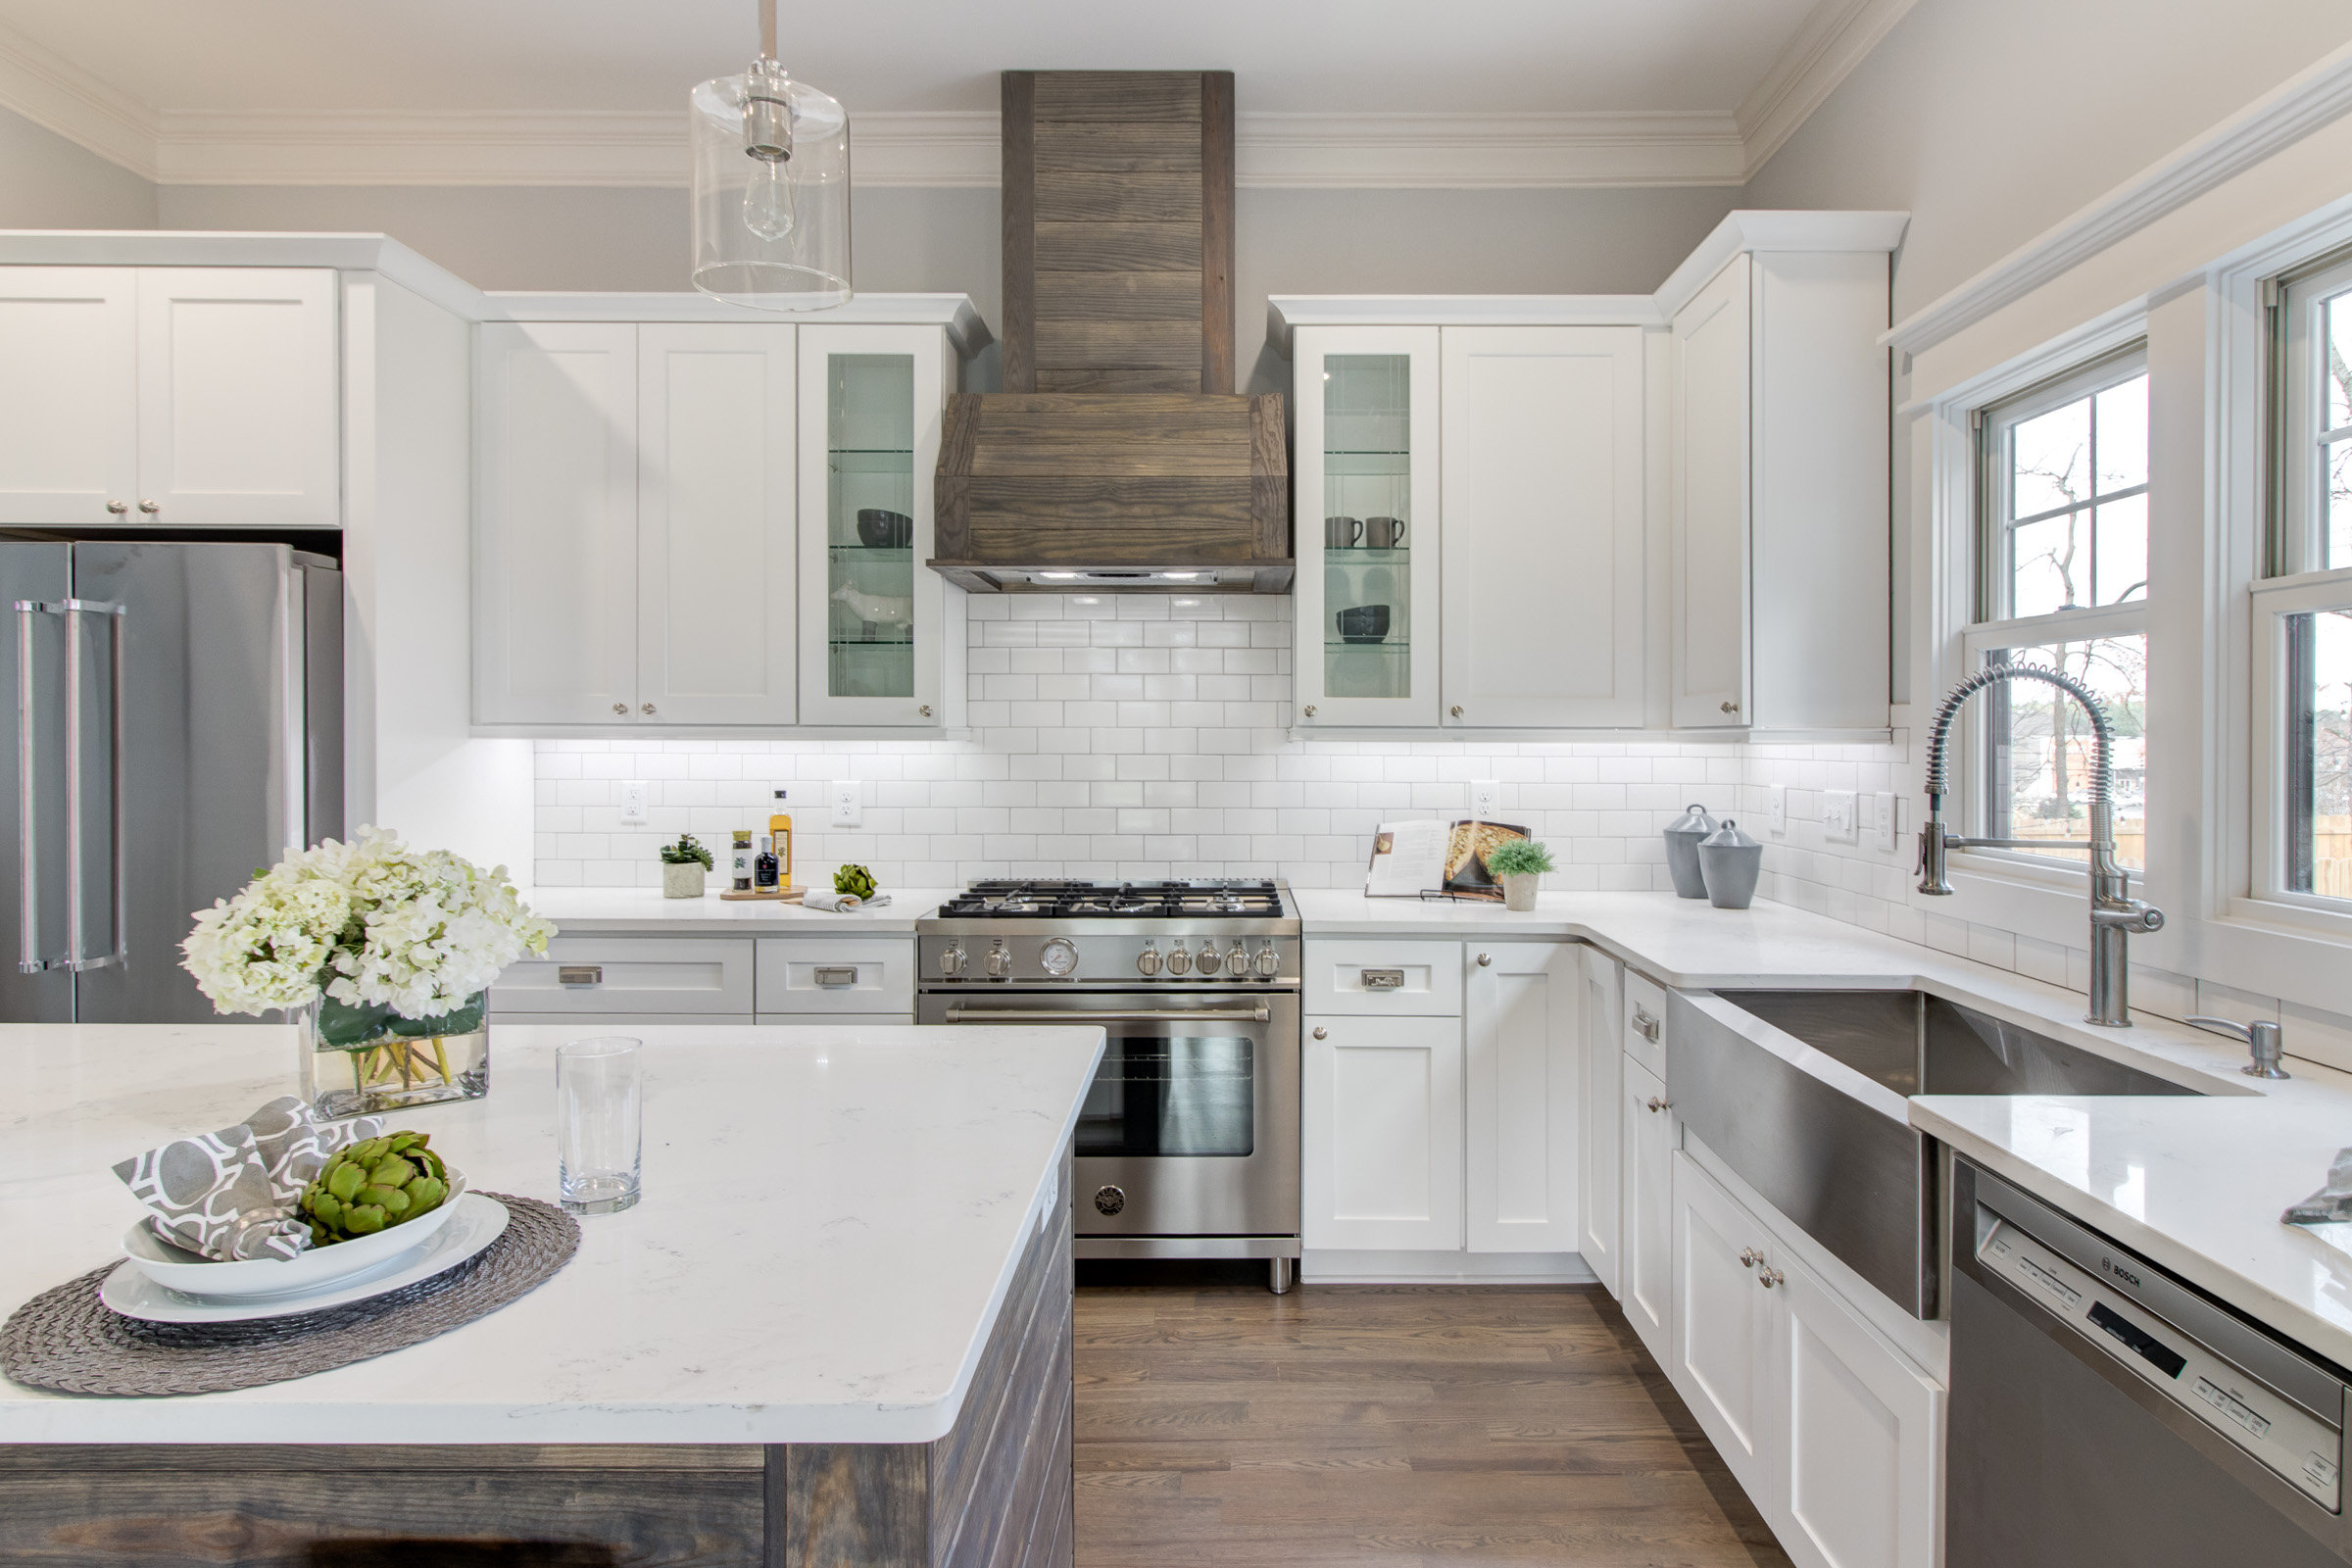 Bright and airy white kitchen with coordinating woof floors and range hood and a stainless steel farmhouse sink.